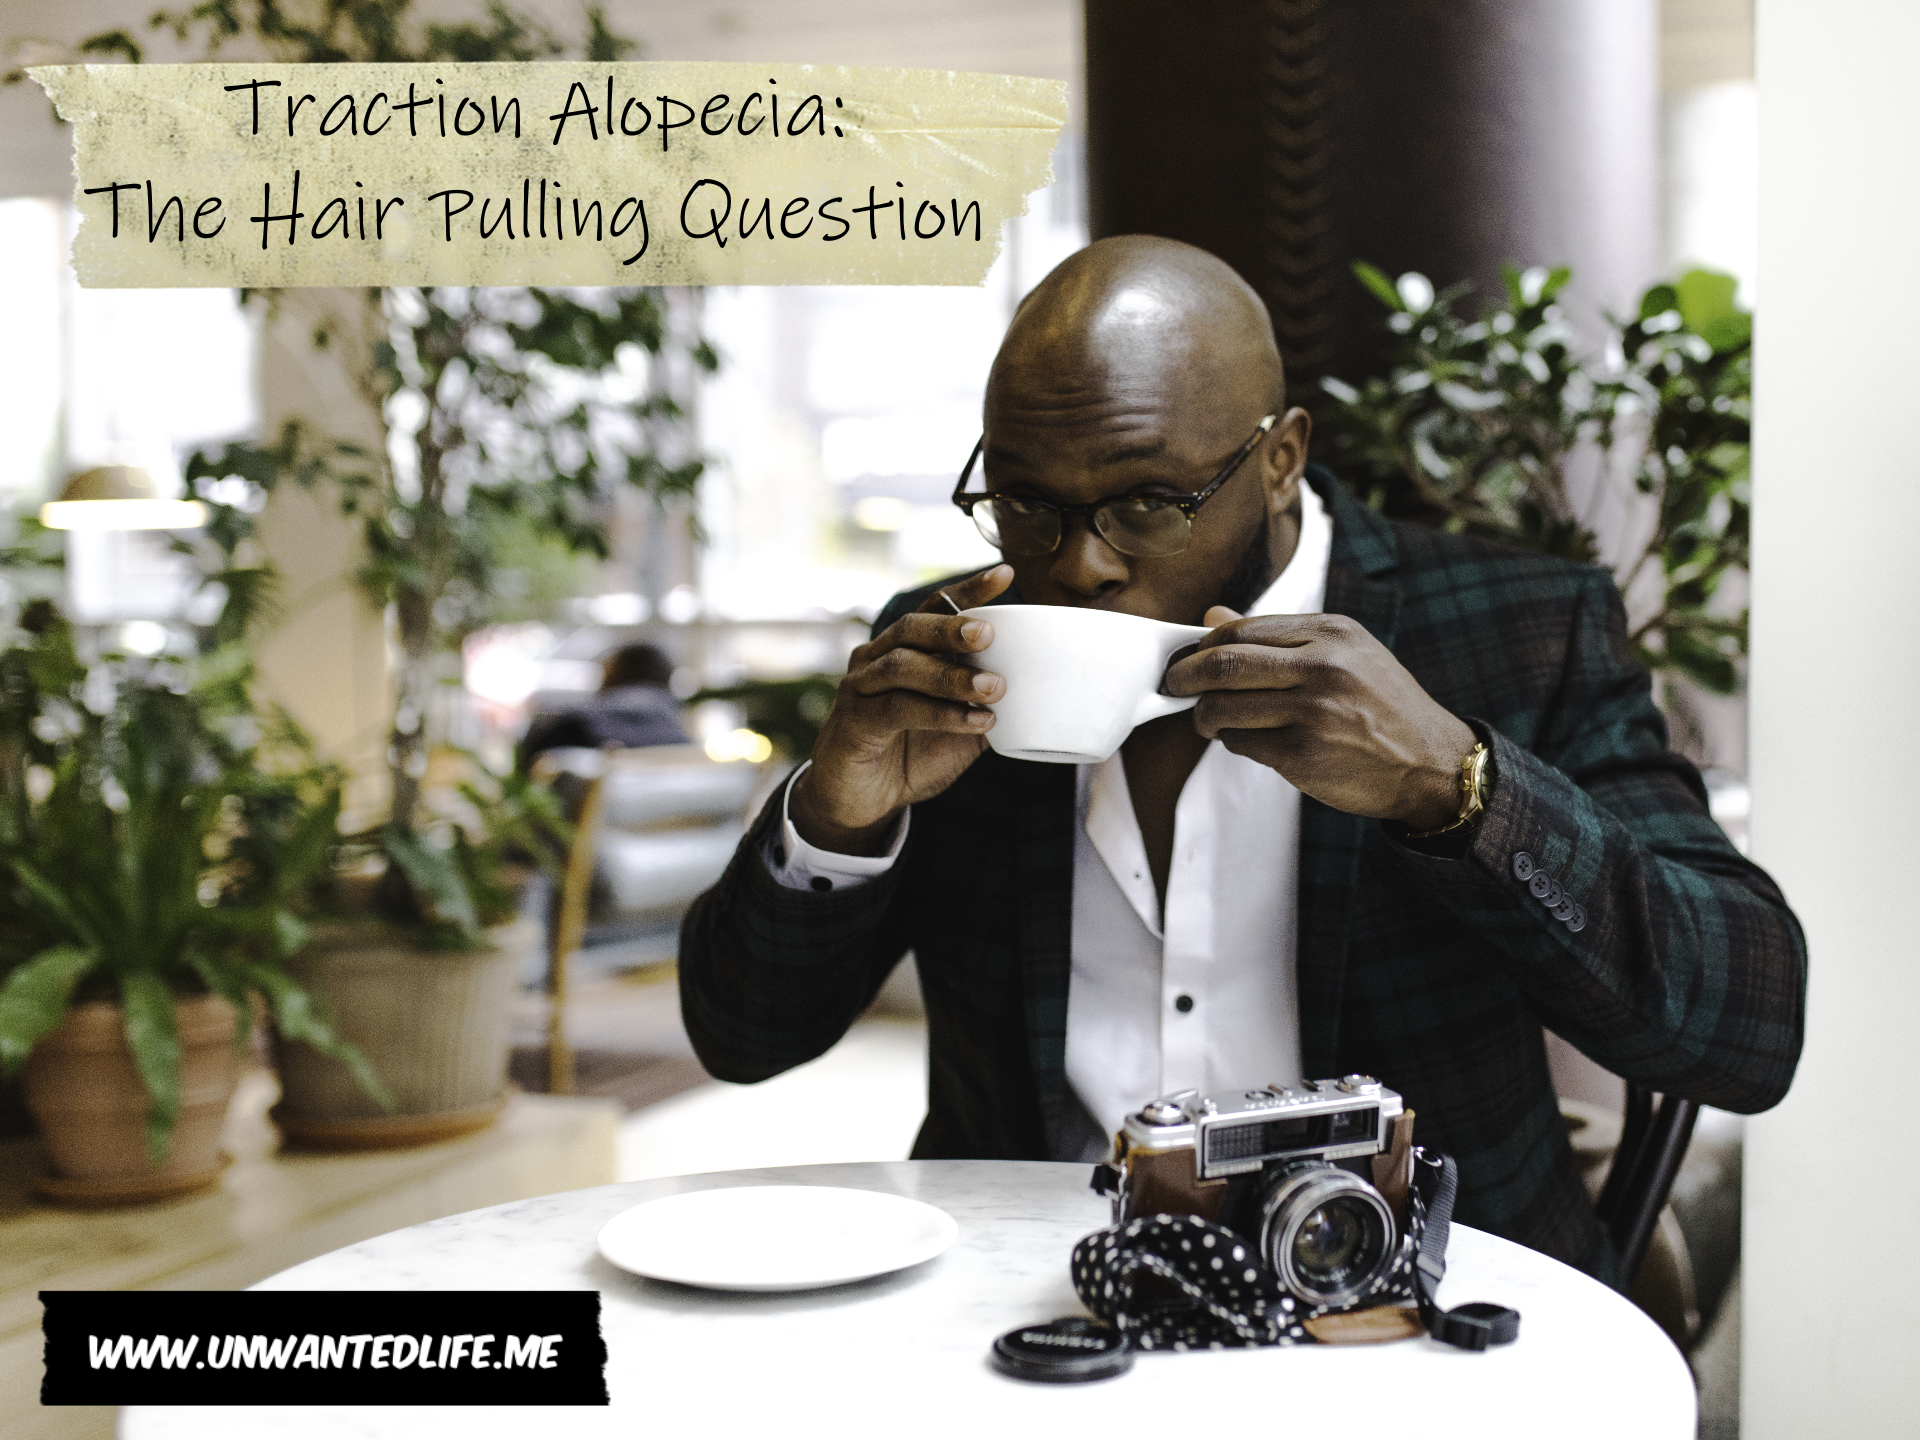 A photo of a bald black man drinking coffee to represent - Traction Alopecia: The Hair Pulling Question